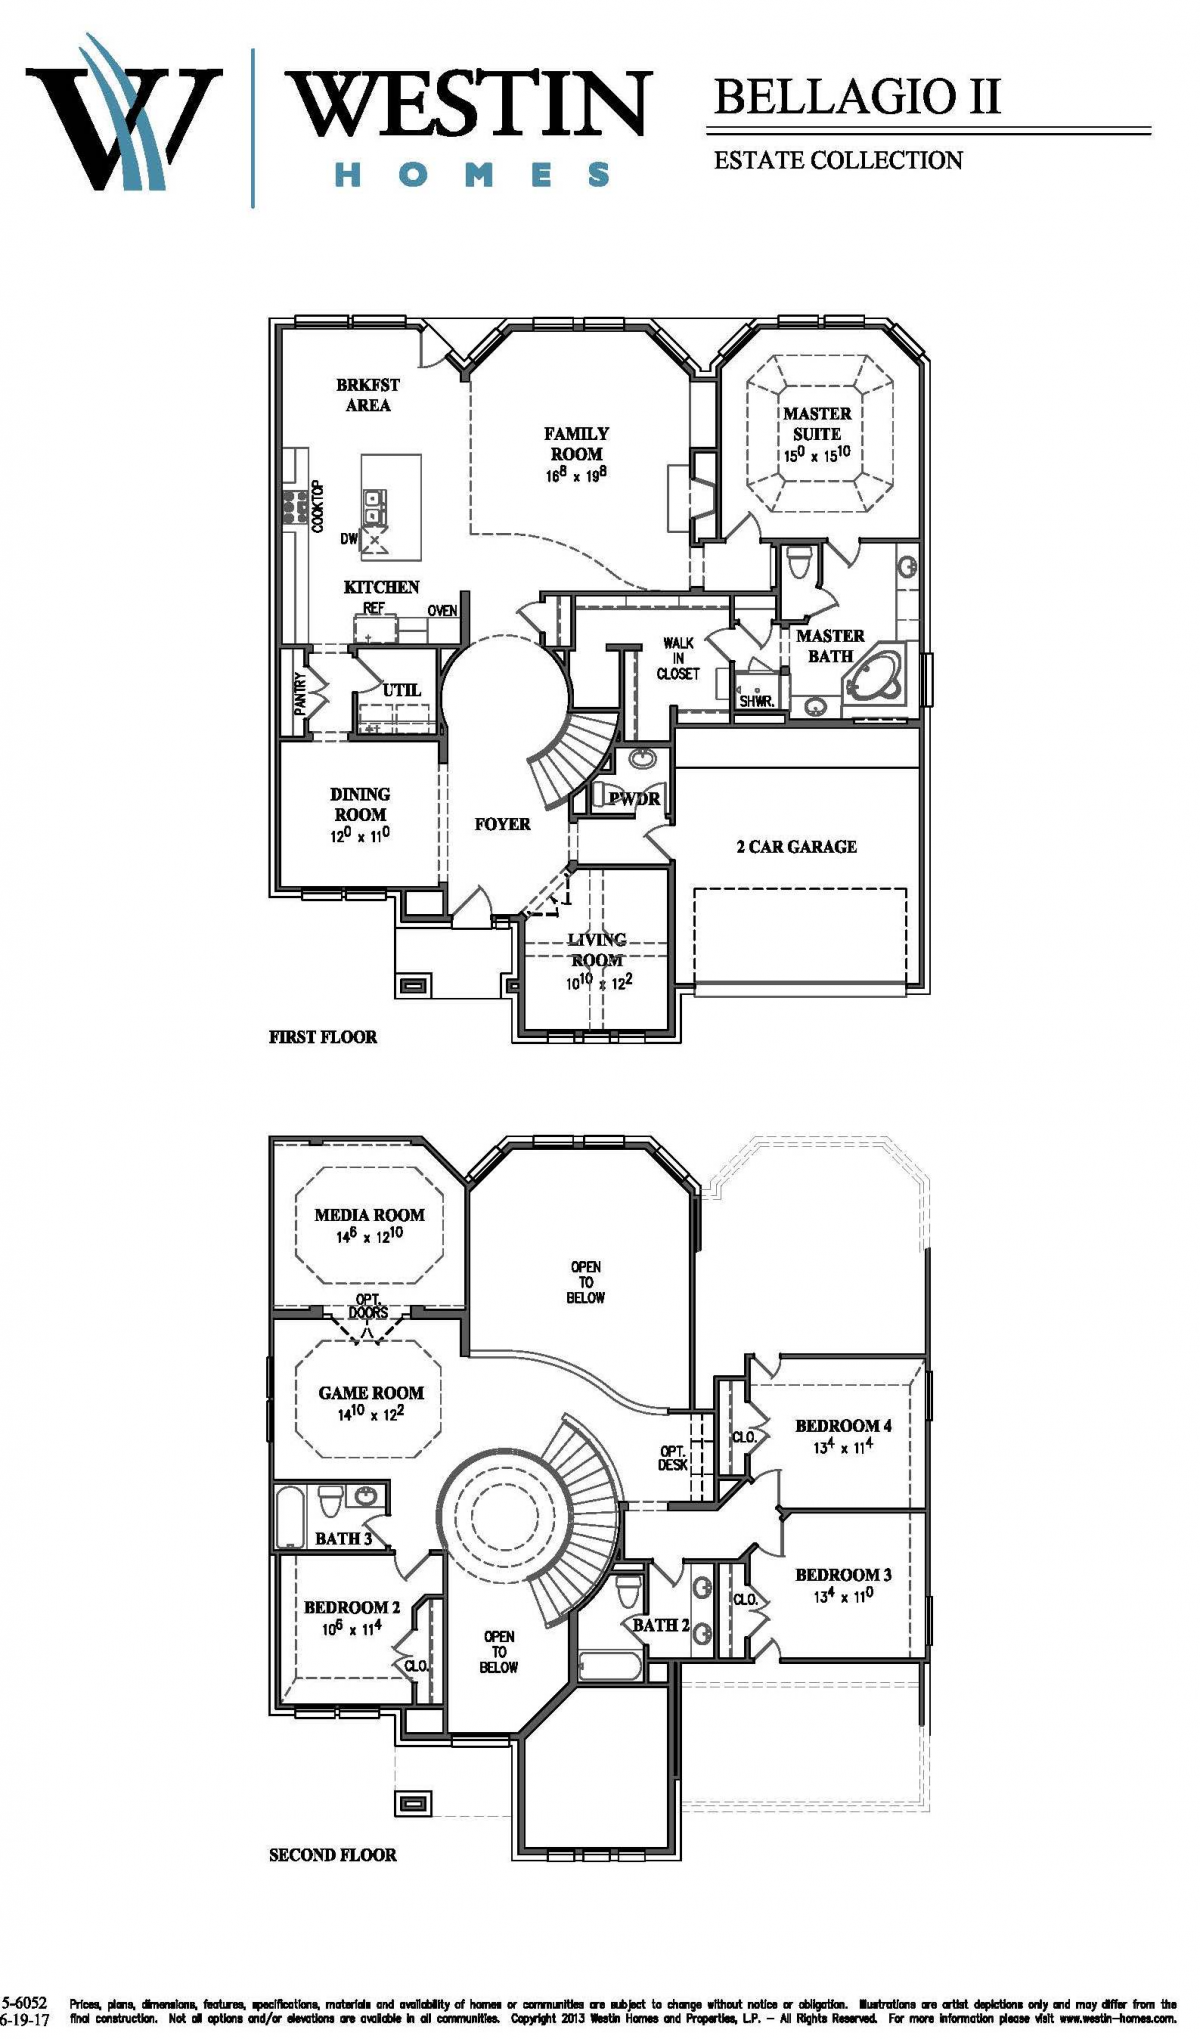 Bellagio II 56052 Floor Plan